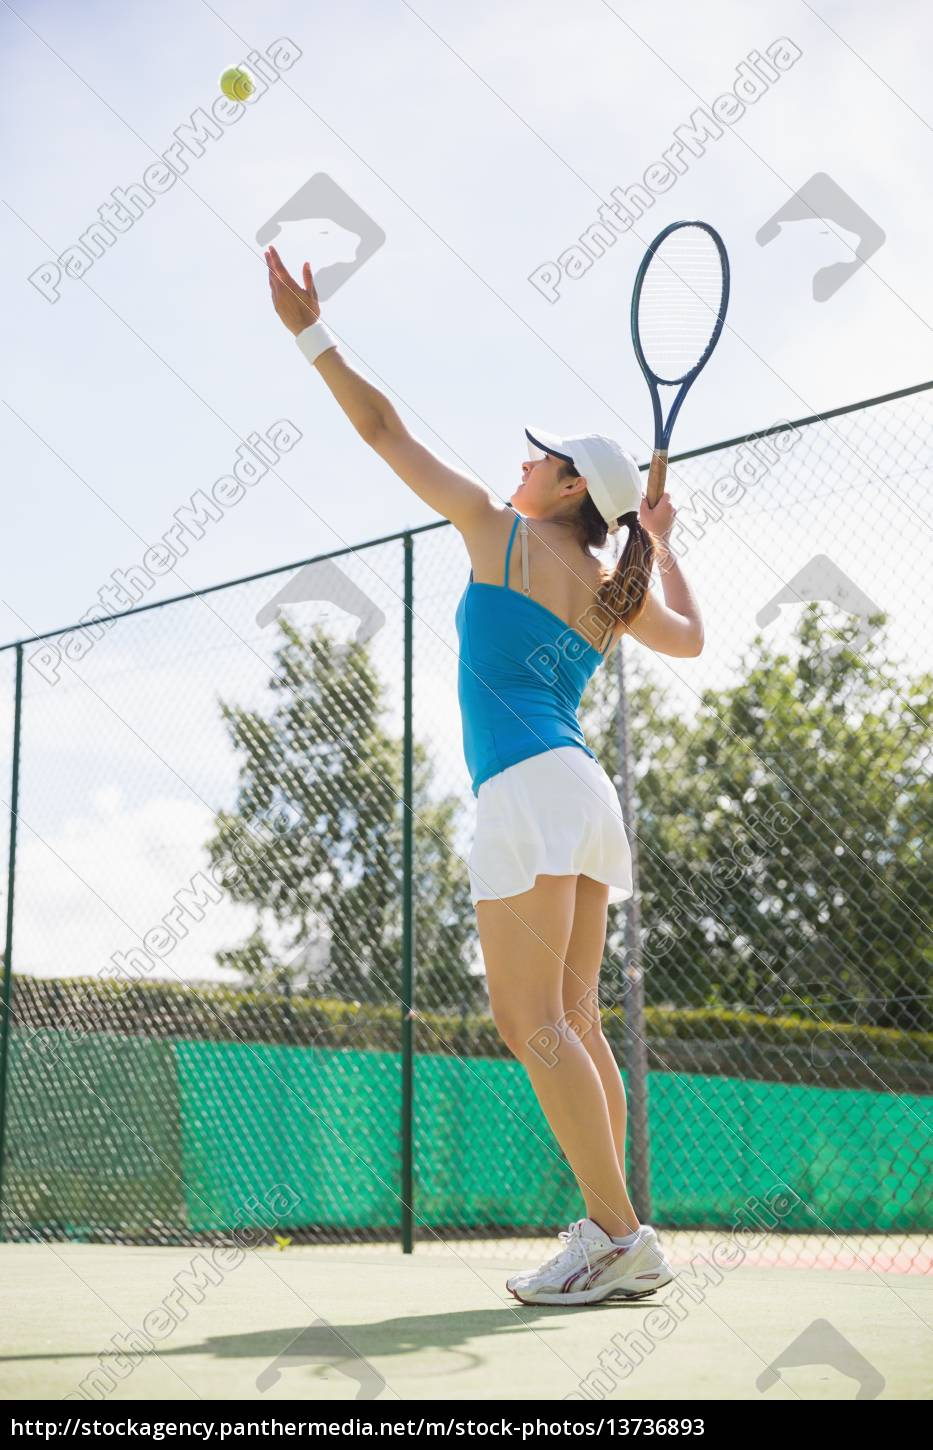 pretty, tennis, player, about, to, serve - 13736893